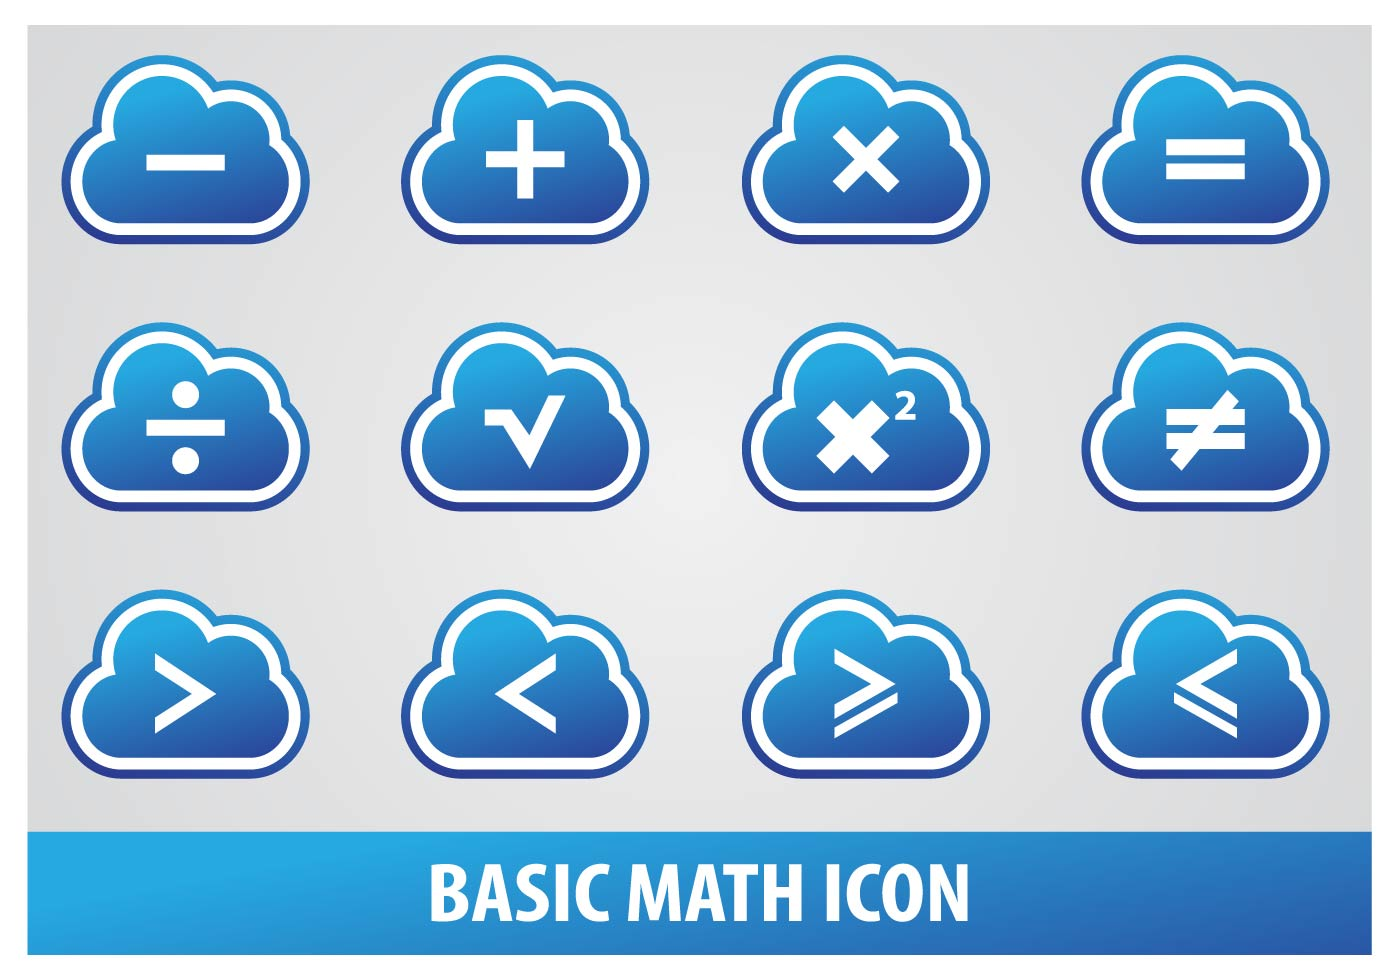 Basic Math Icon - Download Free Vector Art, Stock Graphics & Images